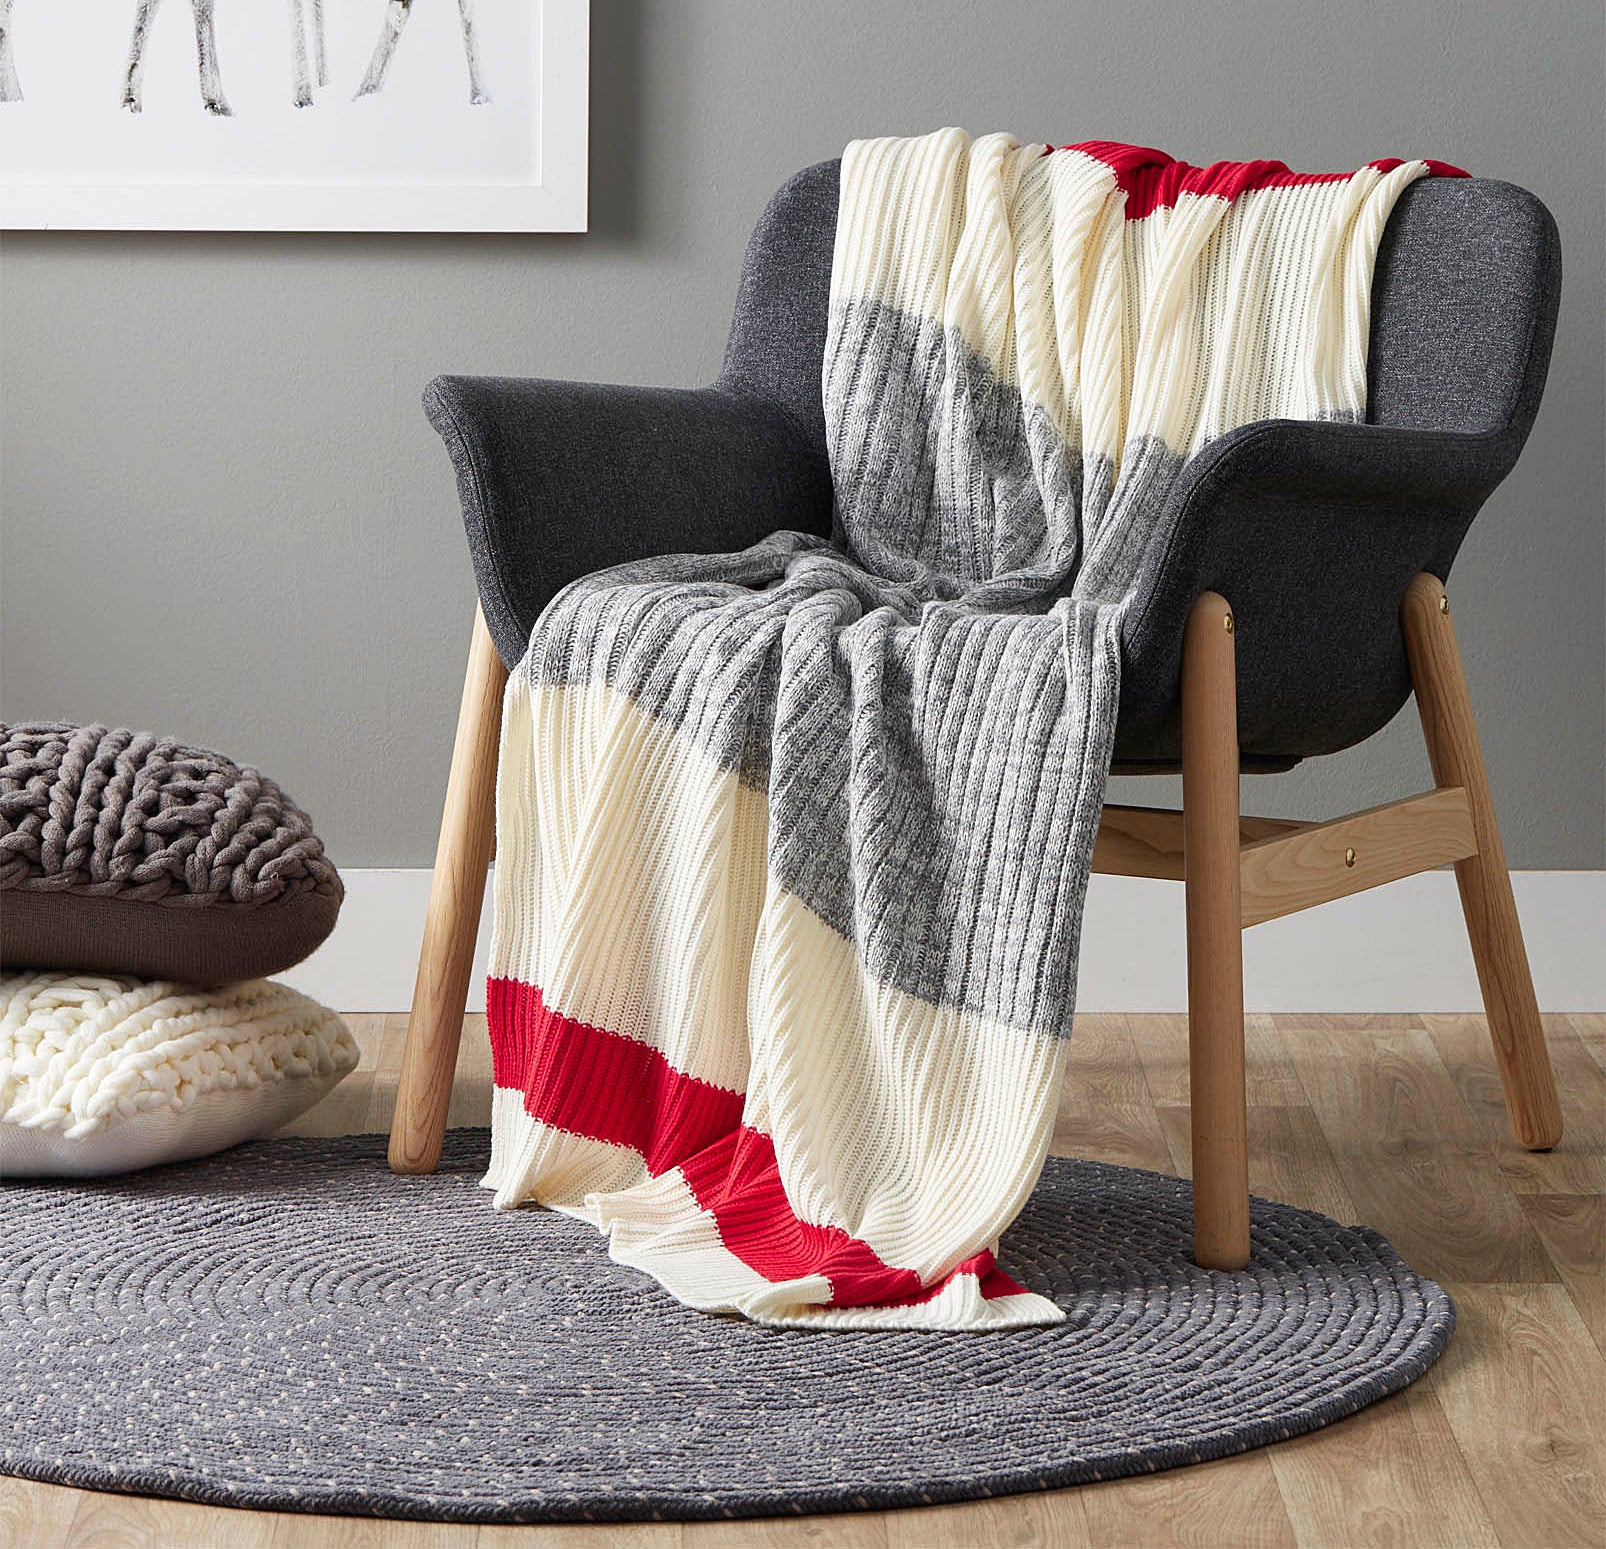 A knit blanket draped over a wooden chair